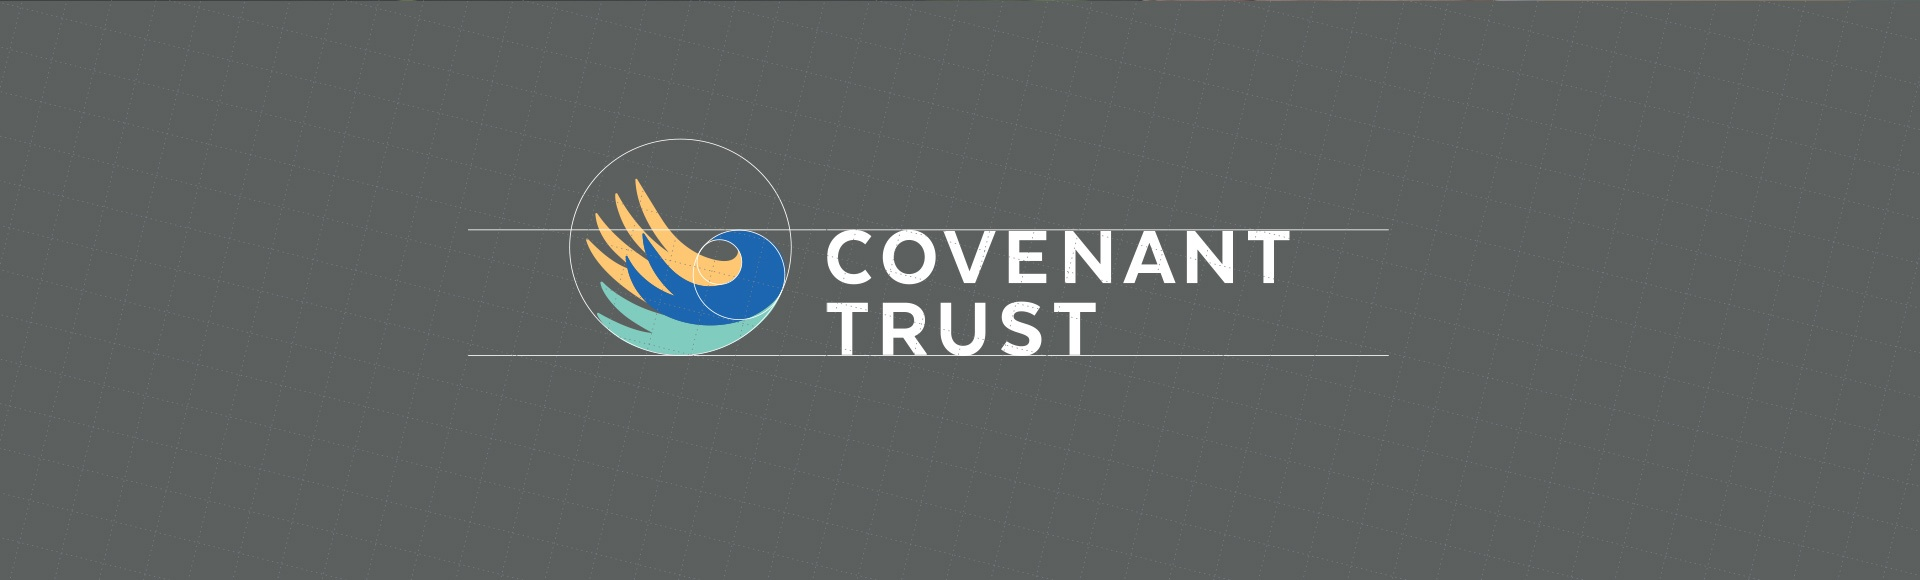 Covenant Trust Gray Logo